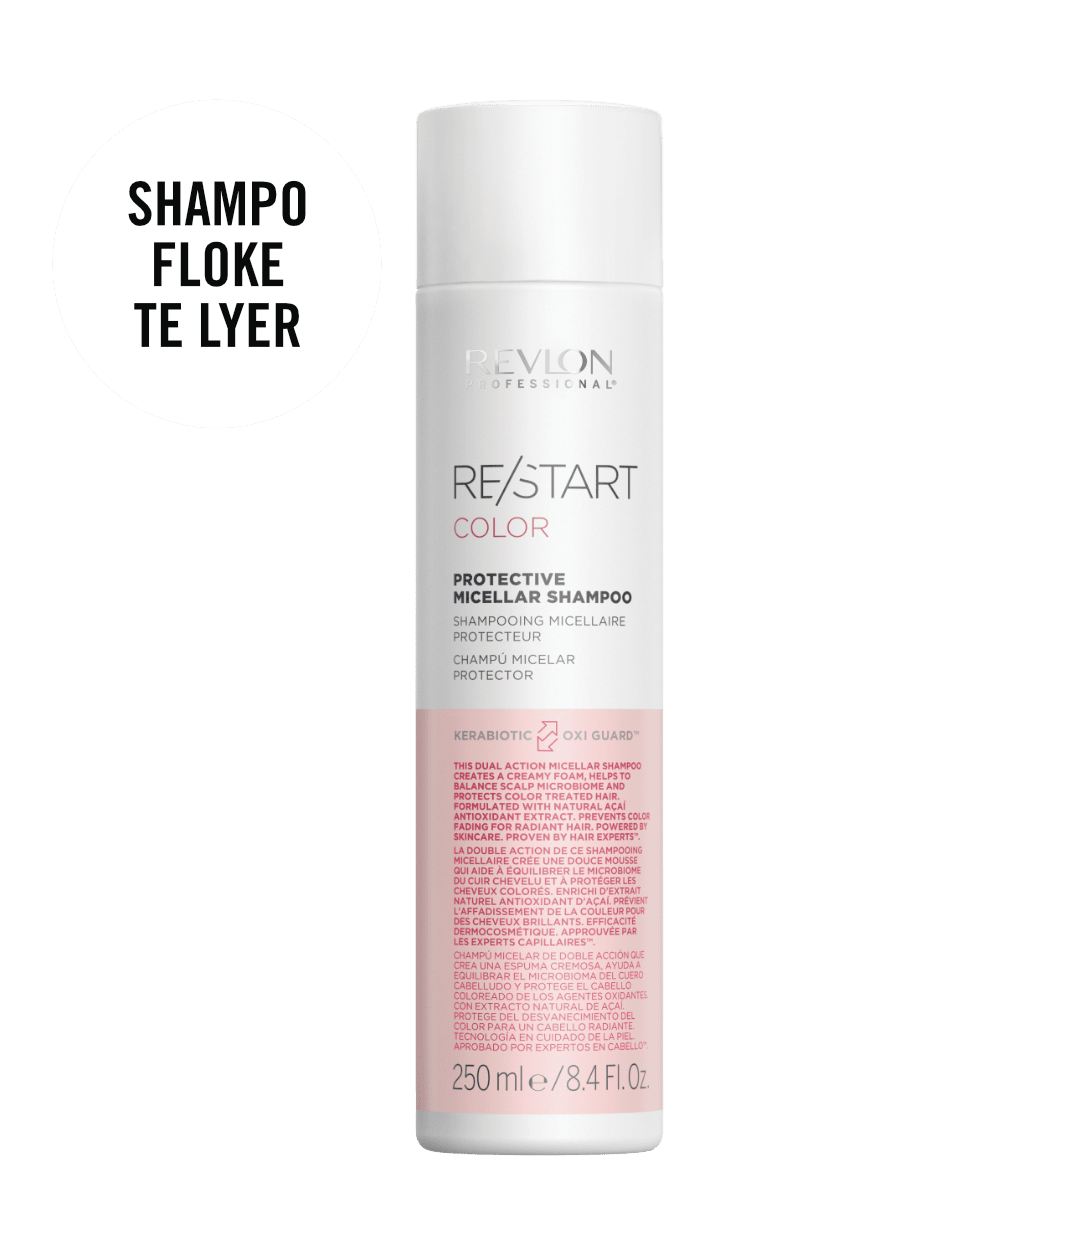 revlon professional RESTART COLOR PROTECTIVE SHAMPOO | Duo Cosmetics